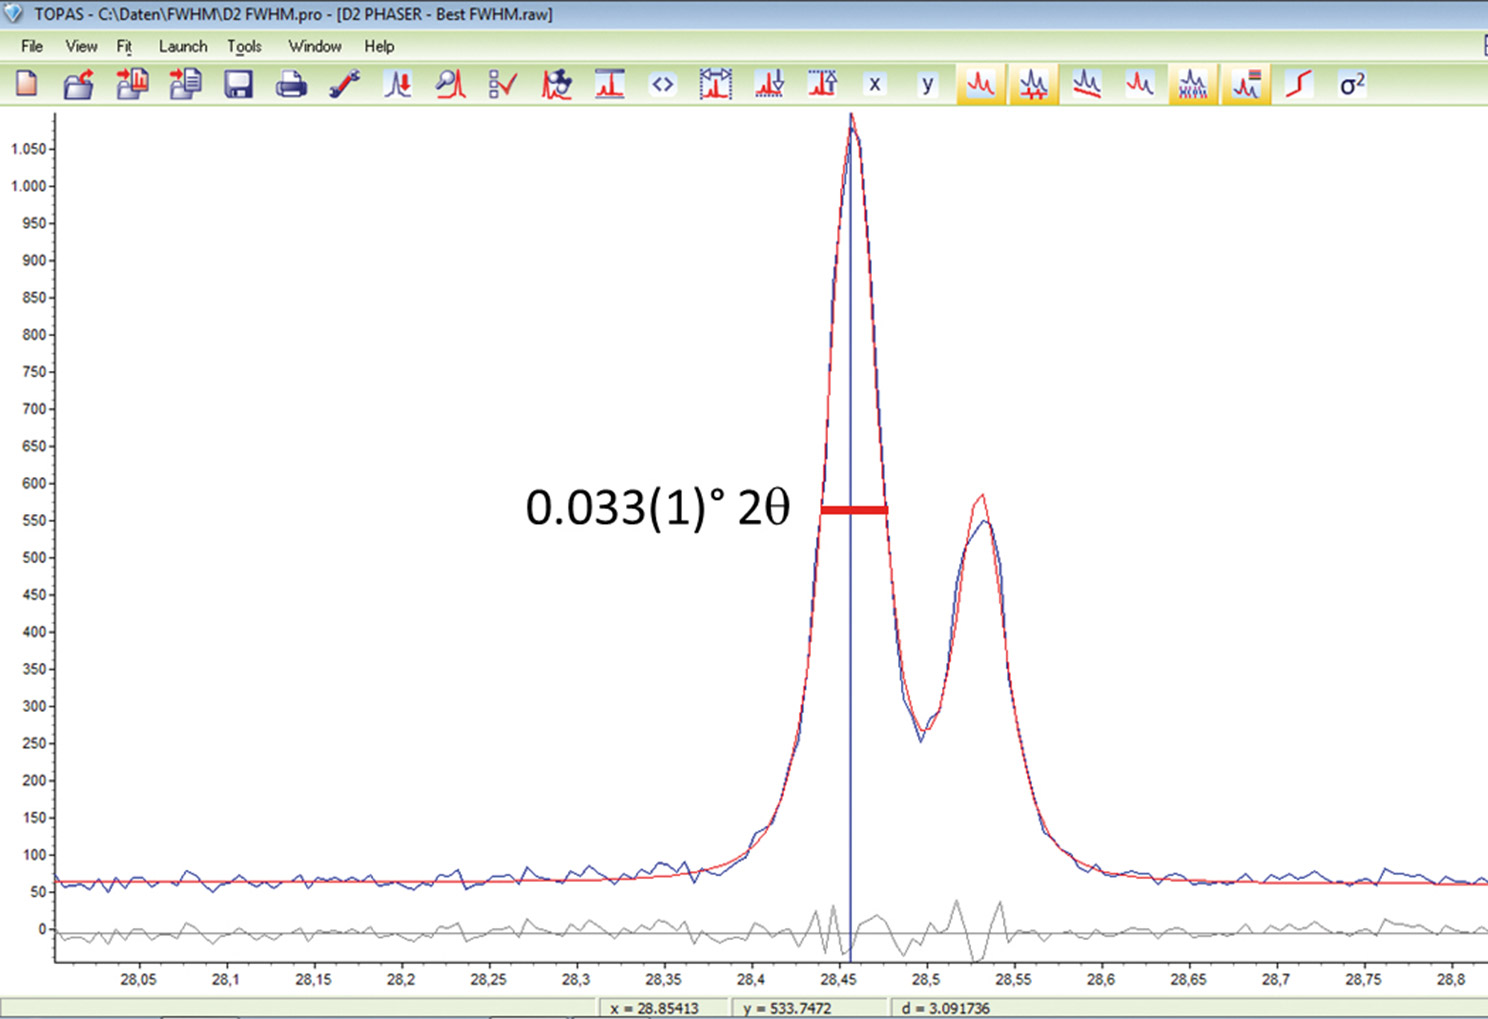 D2 phaser worlds fastest x ray benchtop diffractometer very small peak width of less than 005 2theta obtained by high resolution xrd measurement of lab6 nist srm 660a with lynxeye detector 01 divergence ccuart Gallery